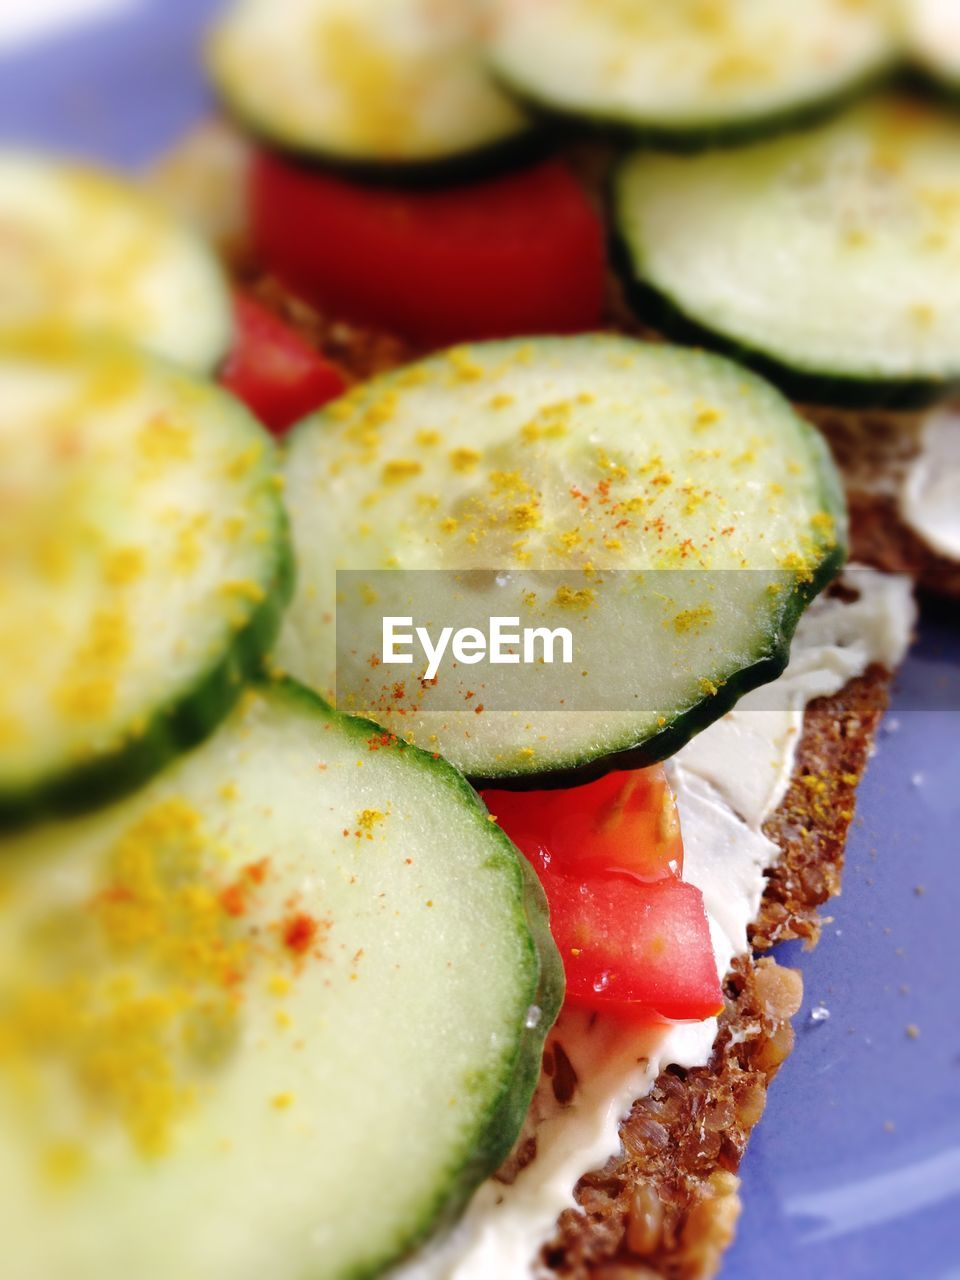 food and drink, food, ready-to-eat, freshness, healthy eating, vegetable, tomato, wellbeing, indoors, plate, still life, fruit, close-up, cucumber, serving size, no people, bread, meal, indulgence, slice, temptation, snack, vegetarian food, breakfast